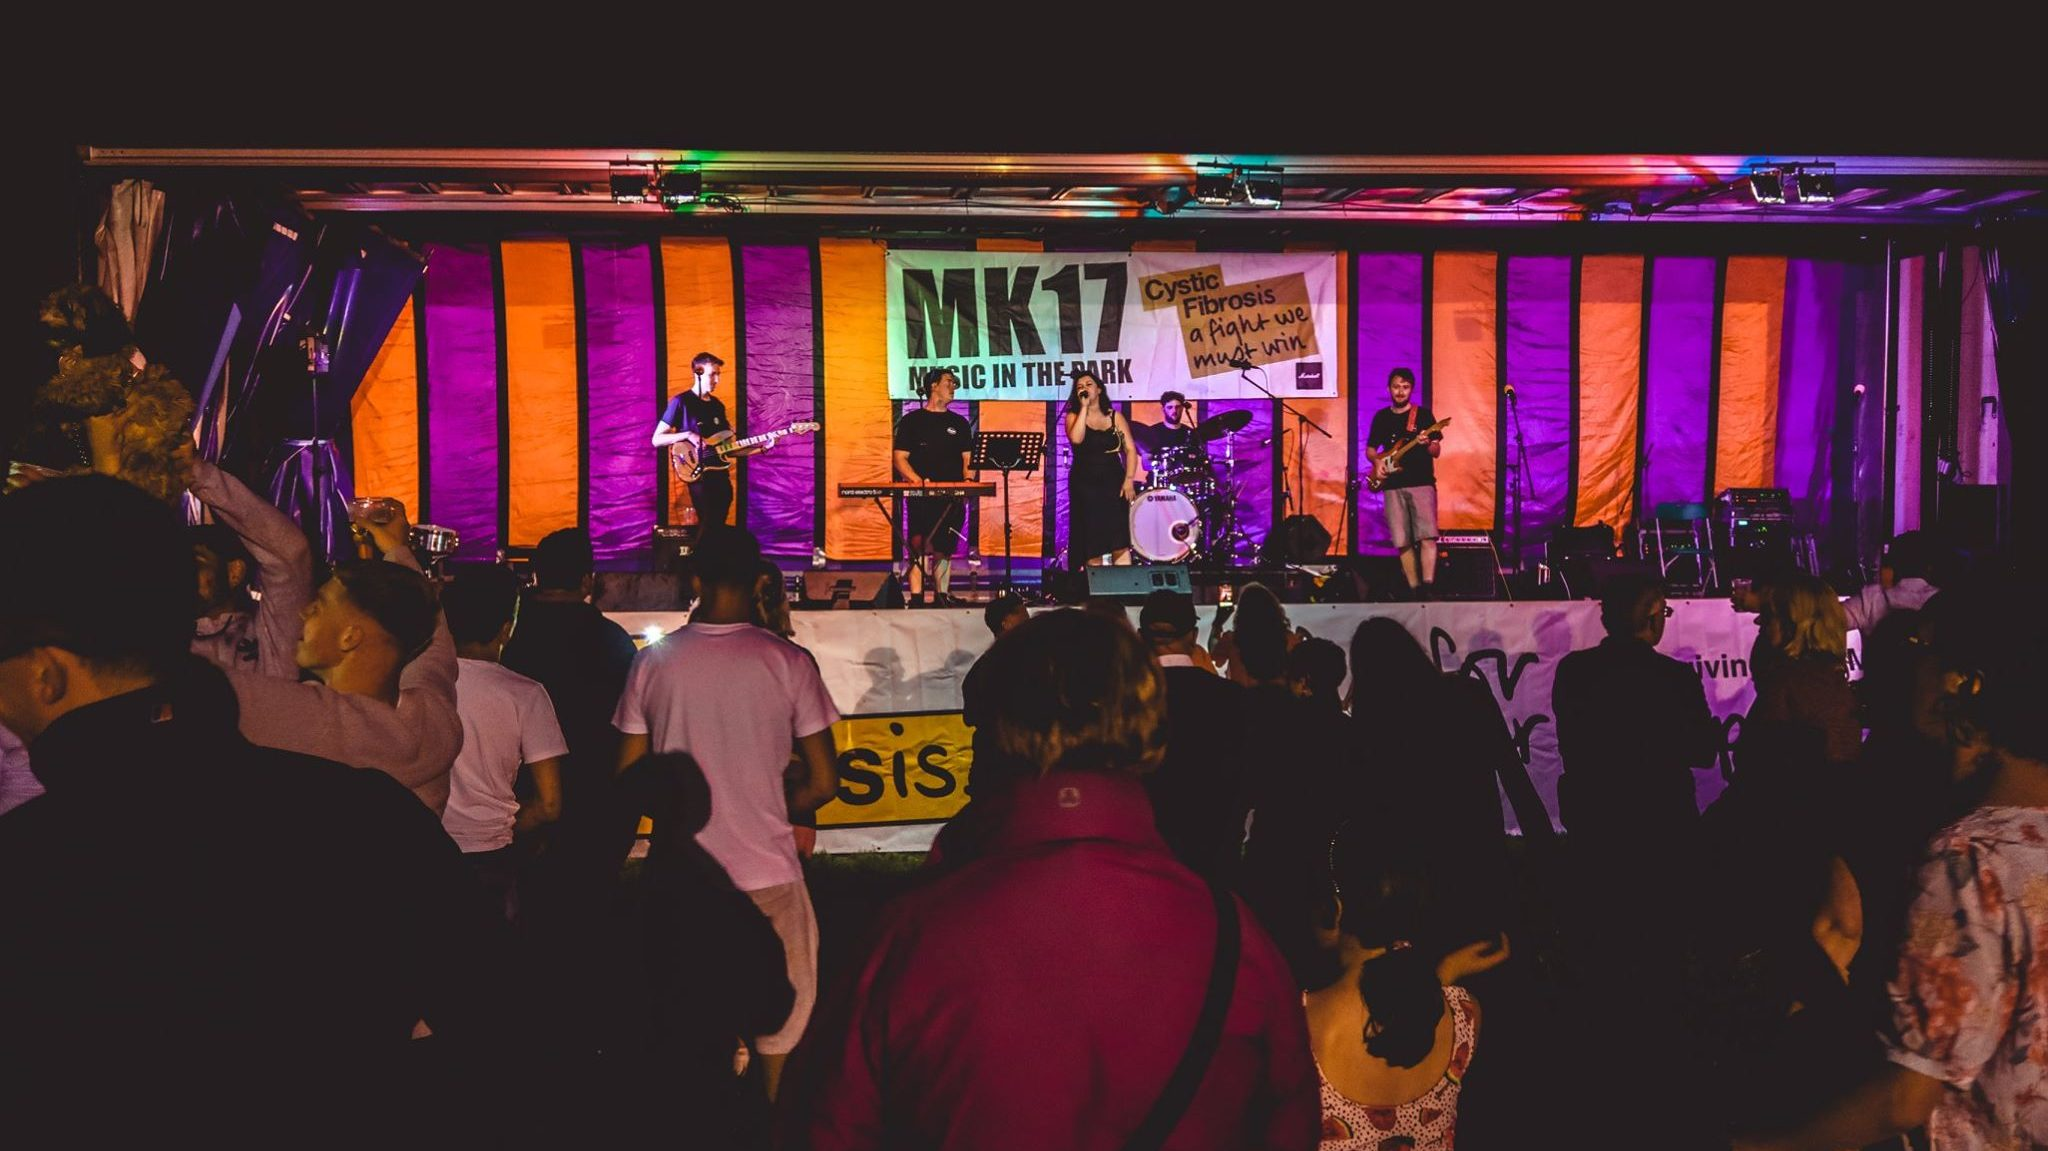 MK17 Music In The Park